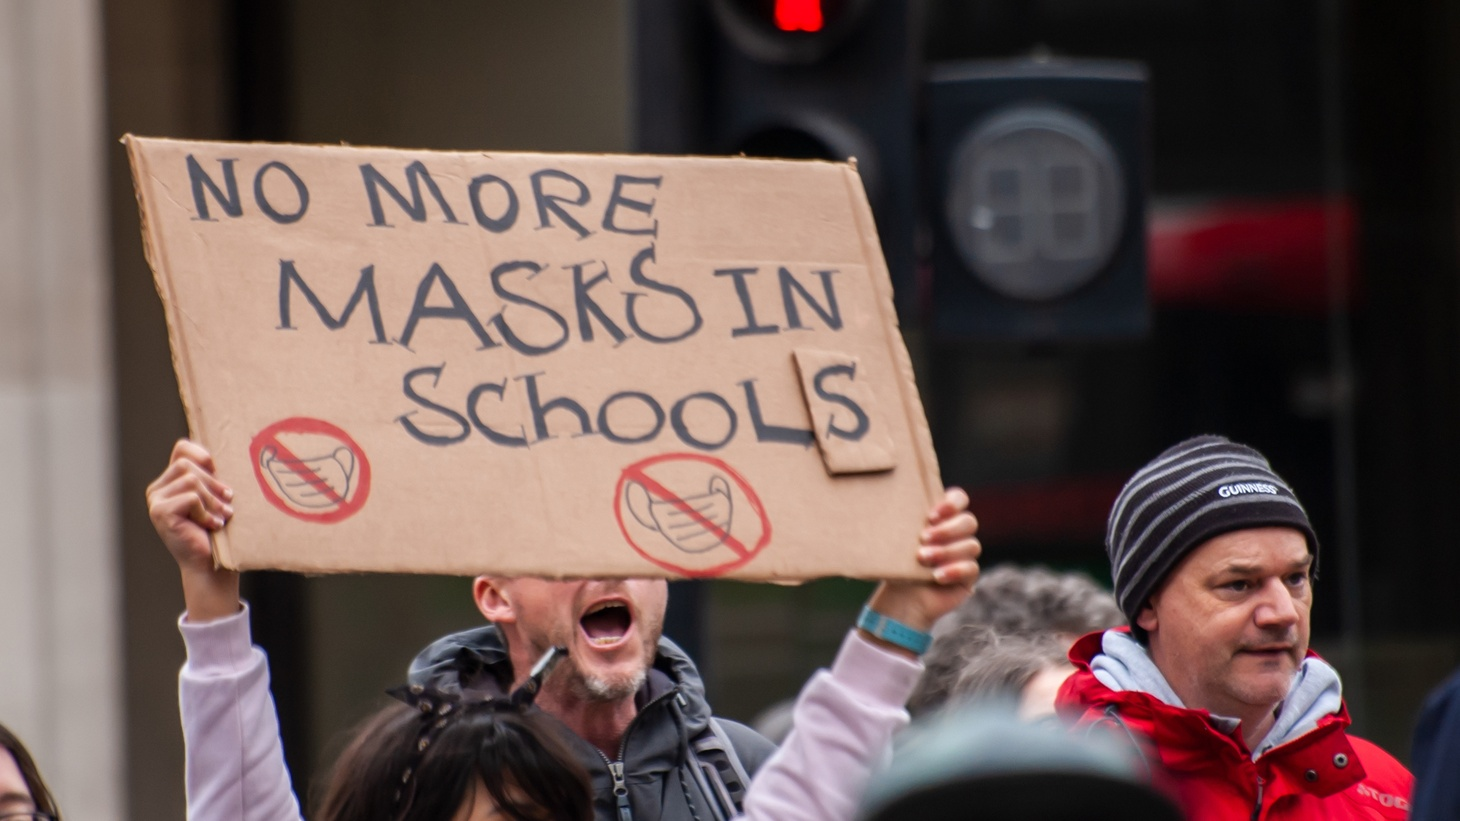 """When Blaine Pope came across anti-mask protestors, he thought, """"How do we have this kind of discussion and not want to scratch each other's eyes out in the process? How do we talk about something that's difficult to talk about, but do so in a respectful way?"""""""